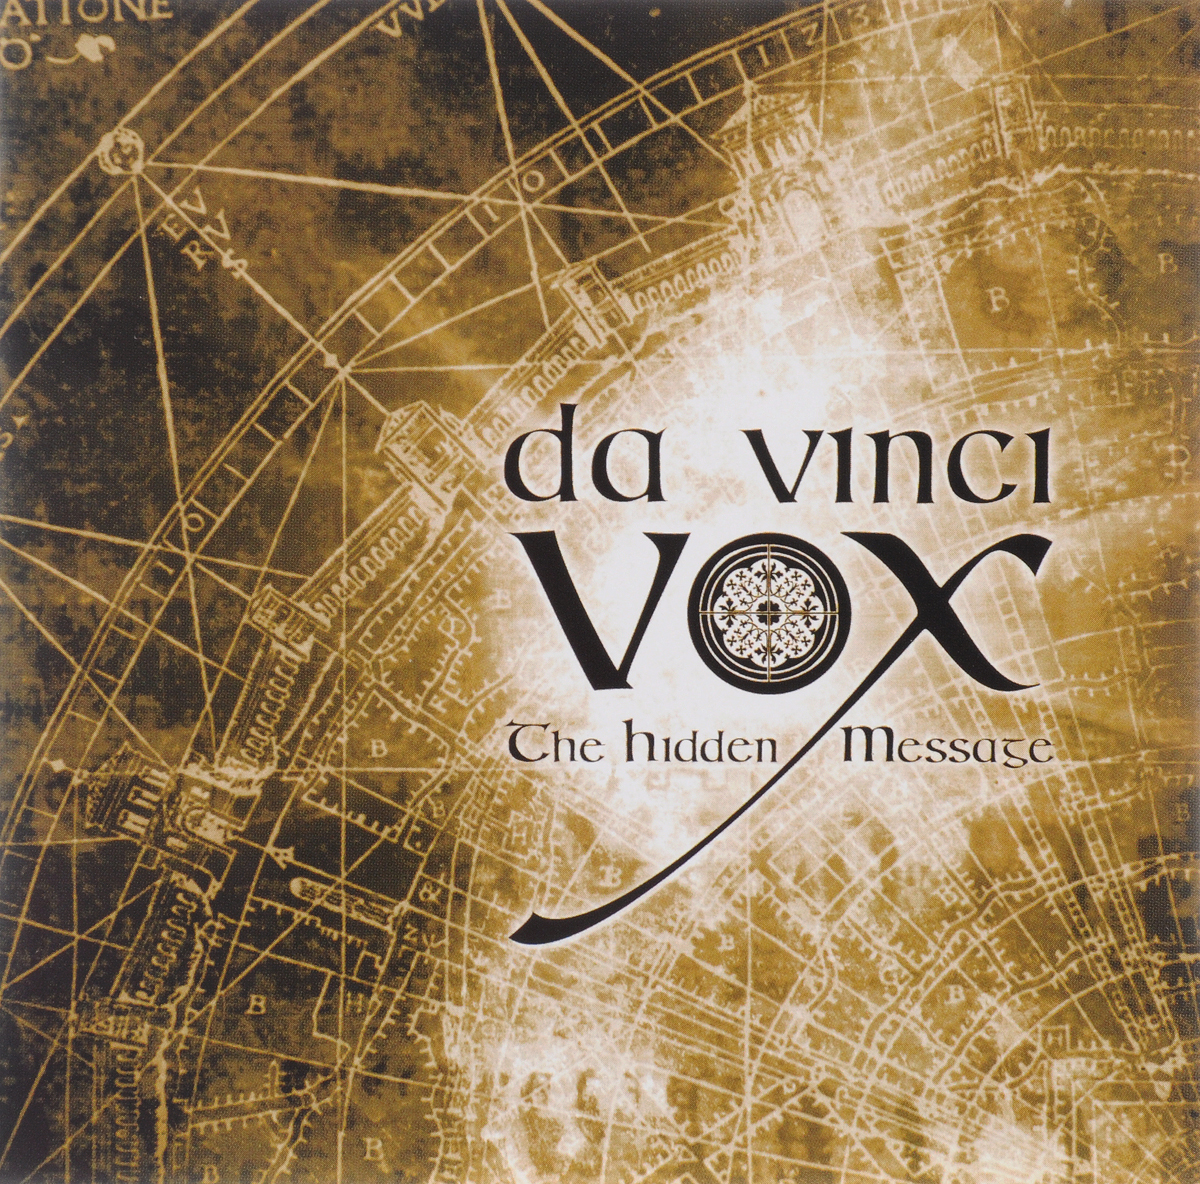 Da Vinci Vox DA VINCI VOX. THE HIDDEN MESSAGE leonardo da vinci мост поворотный модель d 014